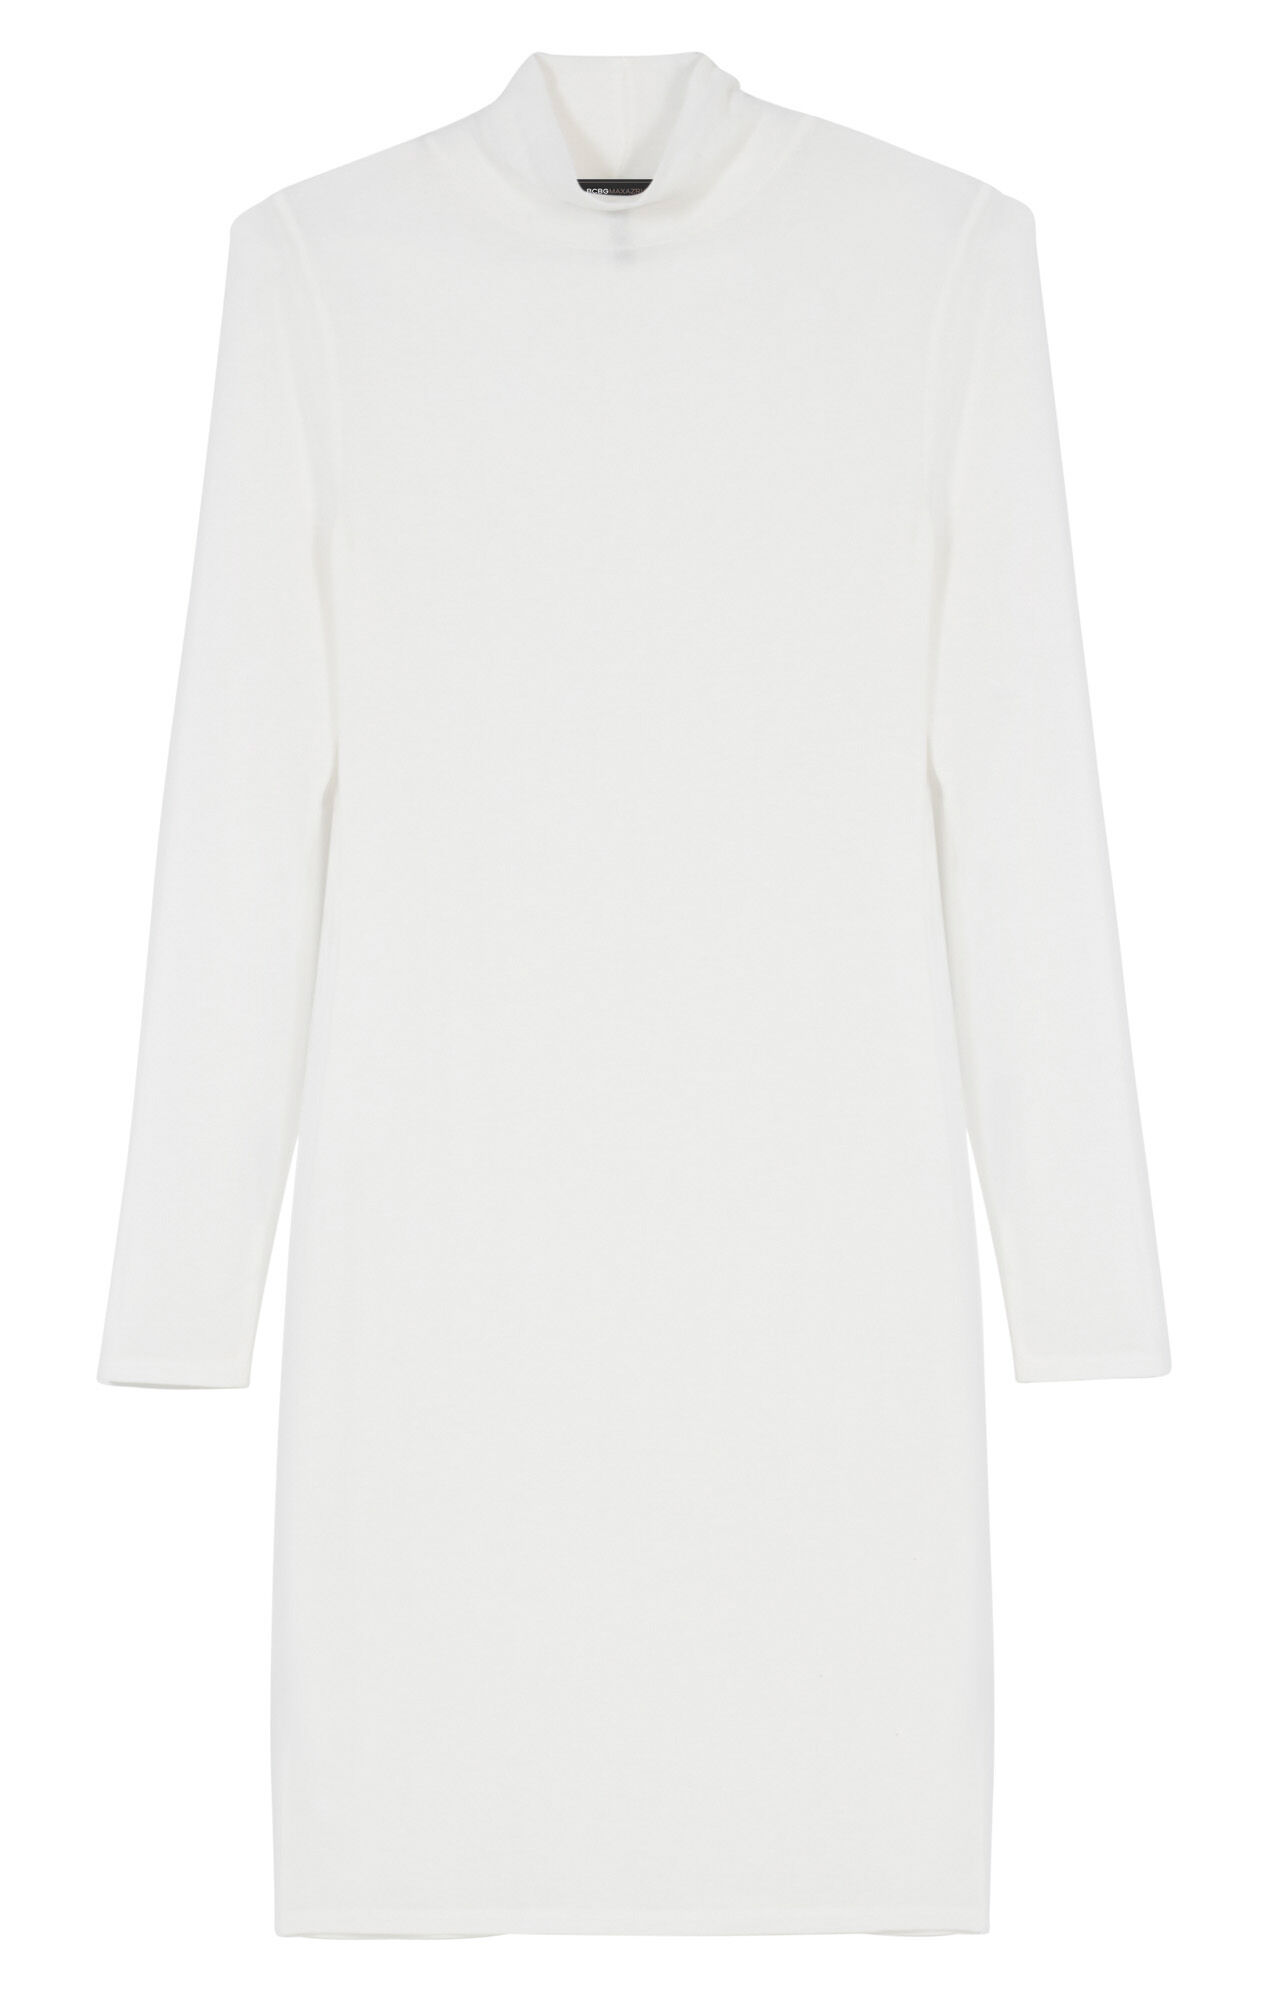 Aeryn Long-Sleeve Turtleneck Dress